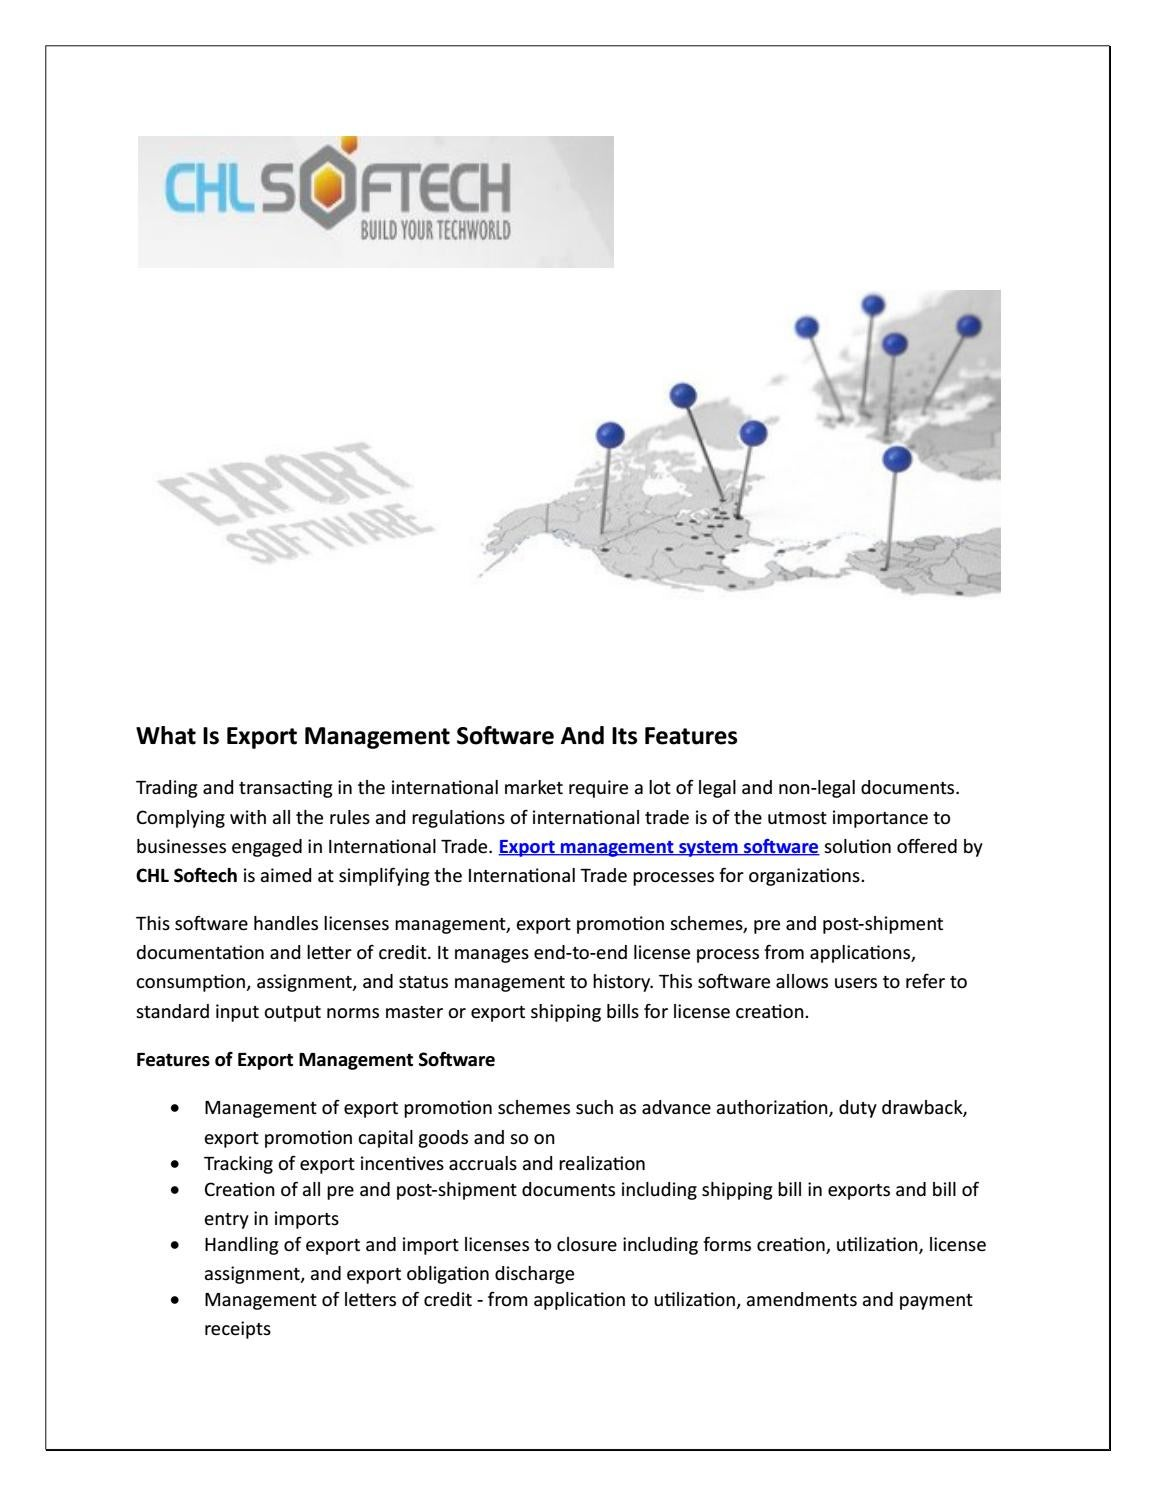 What Is Export Management Software And Its Features by